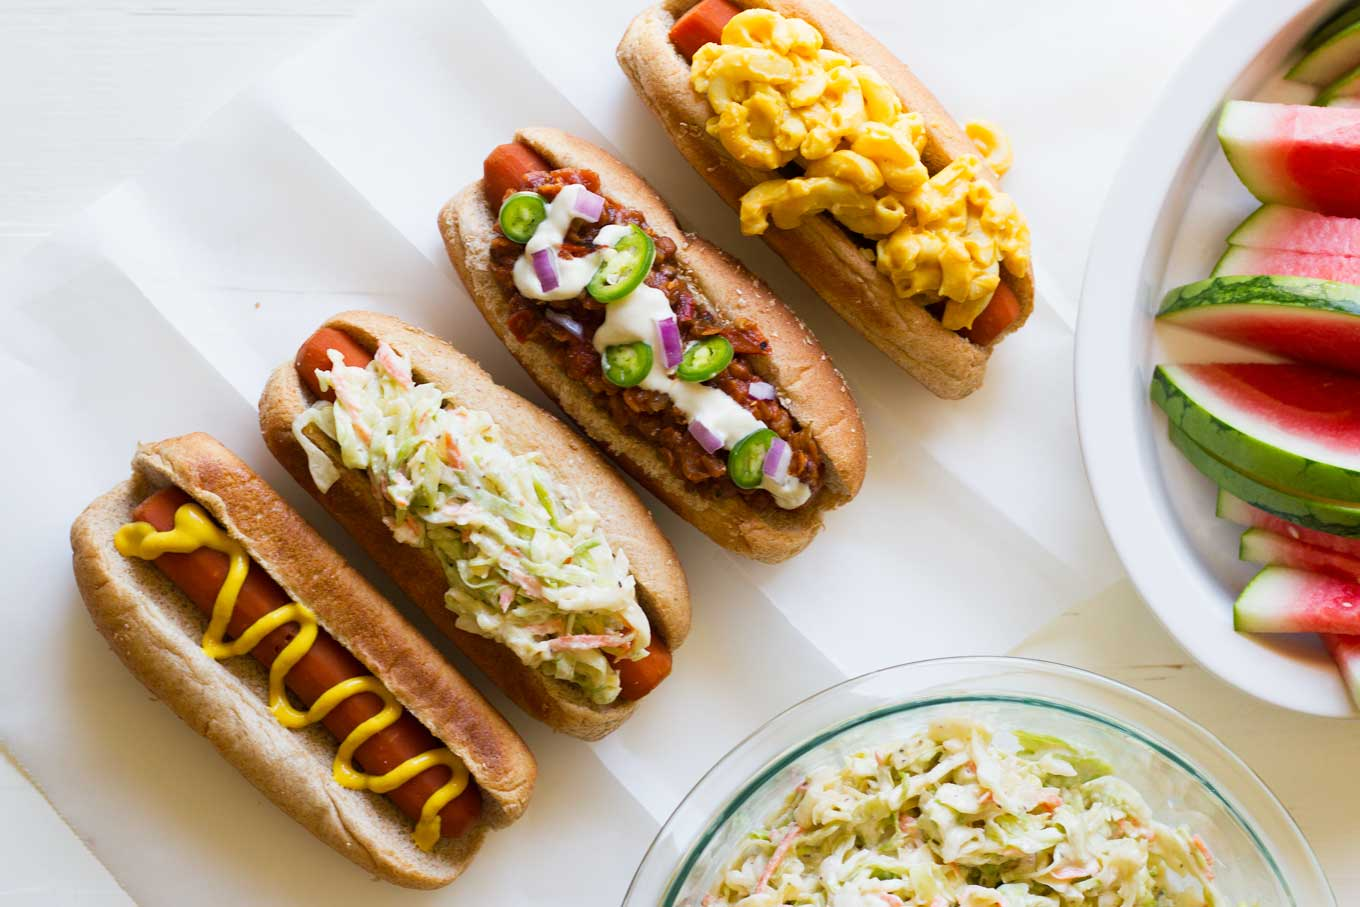 Carrot dogs topped with mustard, coleslaw, vegan chili, and vegan mac and cheese | Easy Carrot Dogs | Plant-based | Vegan | Recipe | https://eatwithinyourmeans.com/